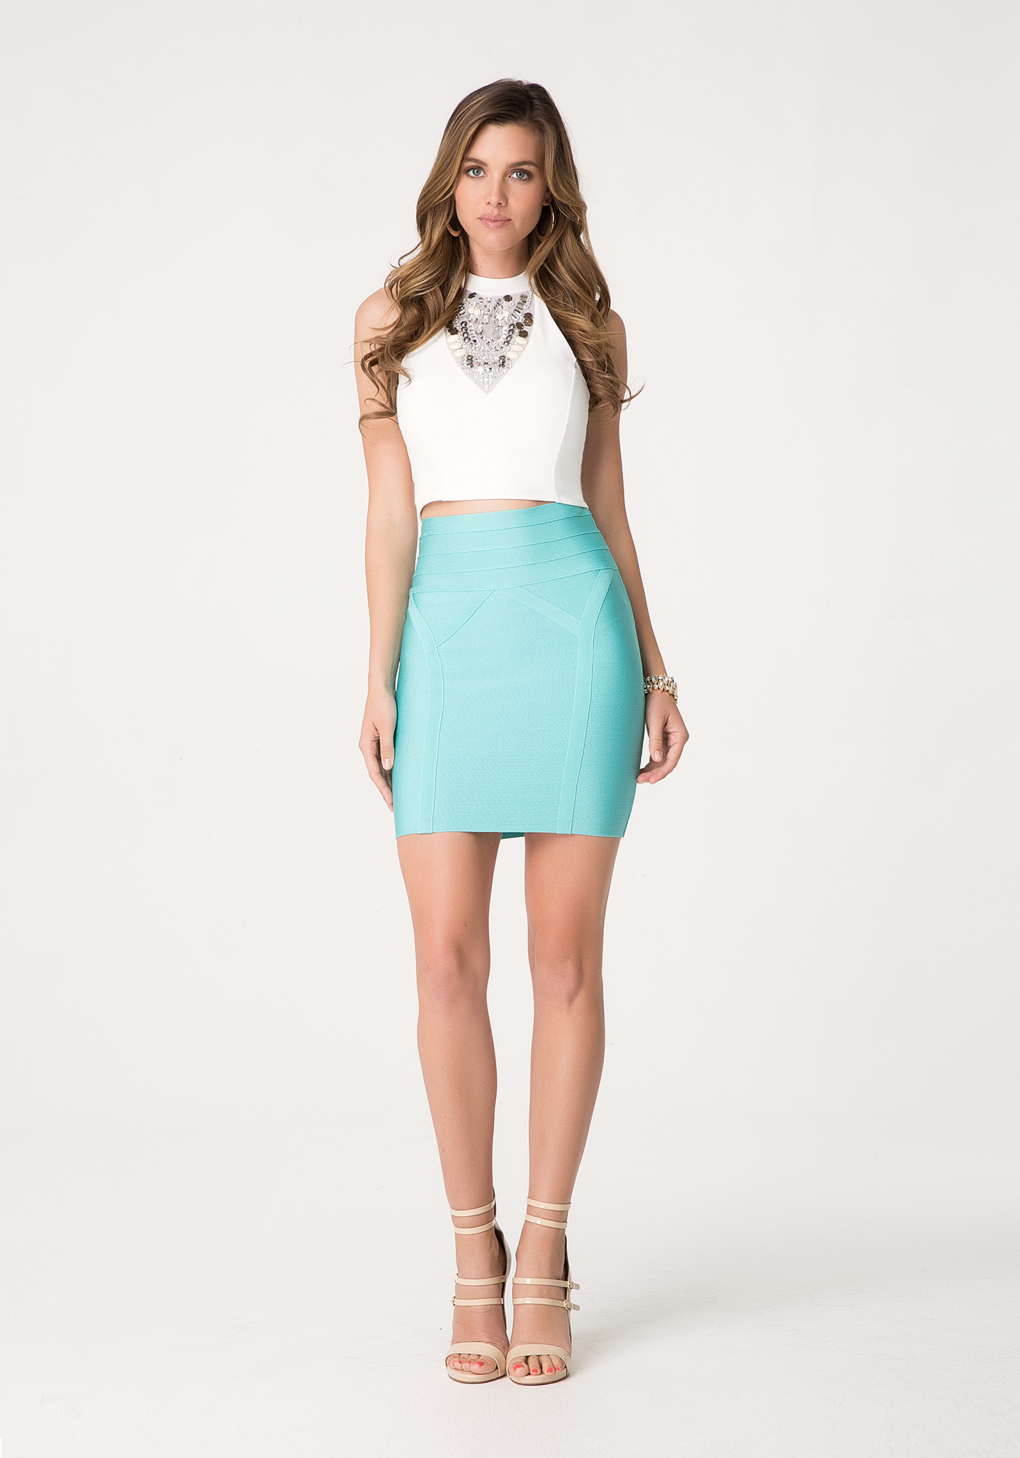 Bebe High Waist Bodycon Skirt in Blue | Lyst